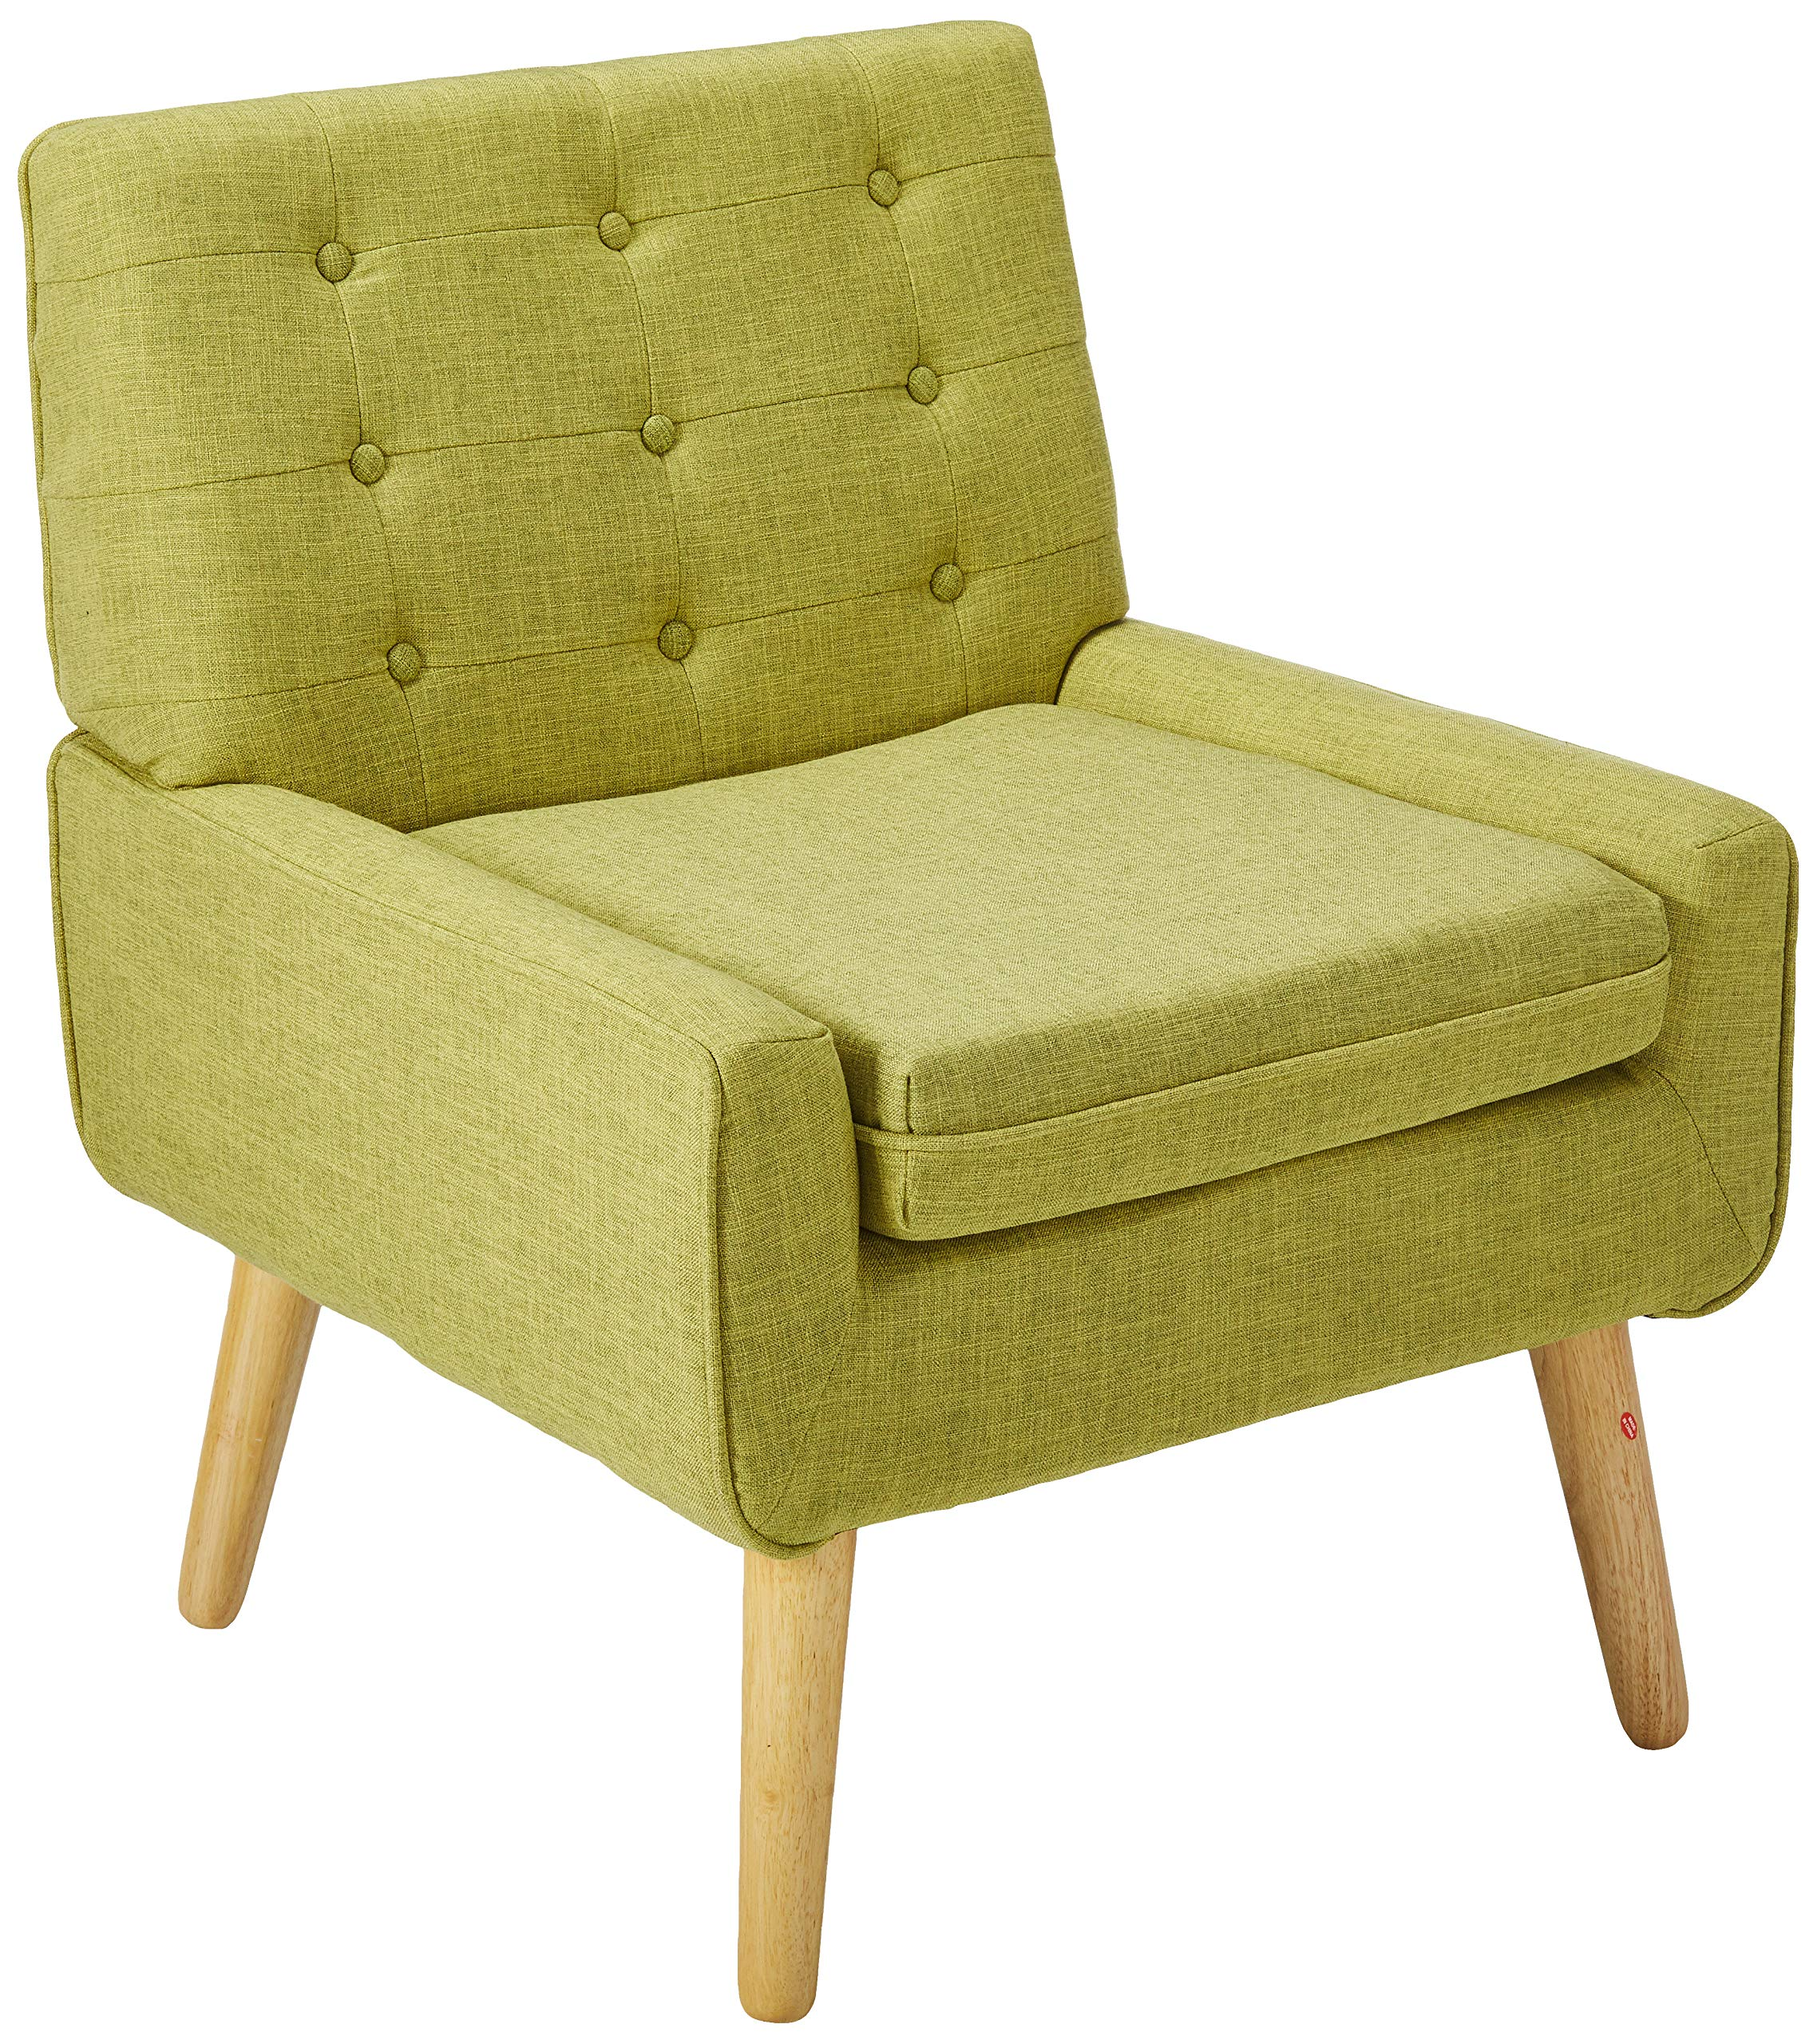 Christopher Knight Home Eilidh Buttoned Mid Century Modern Muted Green Fabric Chair by Christopher Knight Home